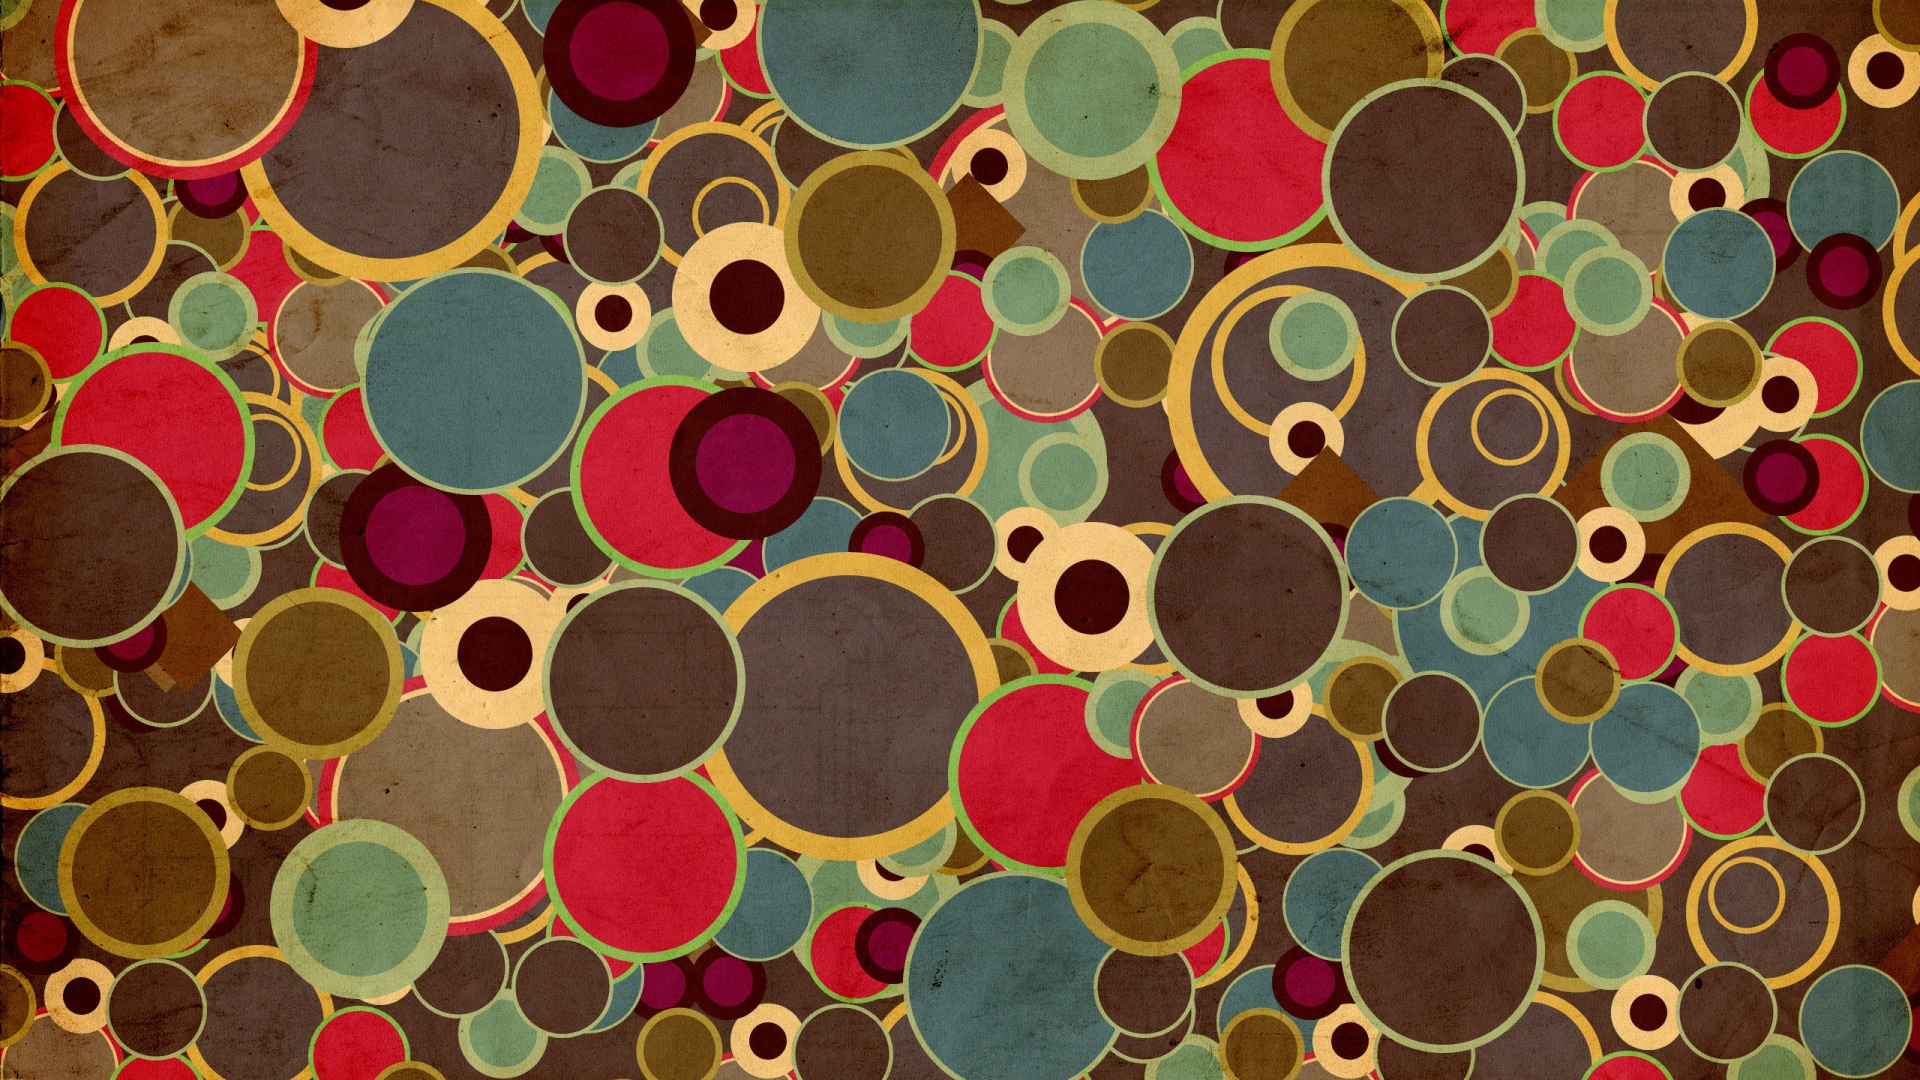 1920x1080-circles-background-surface-wallpaper-wp360883